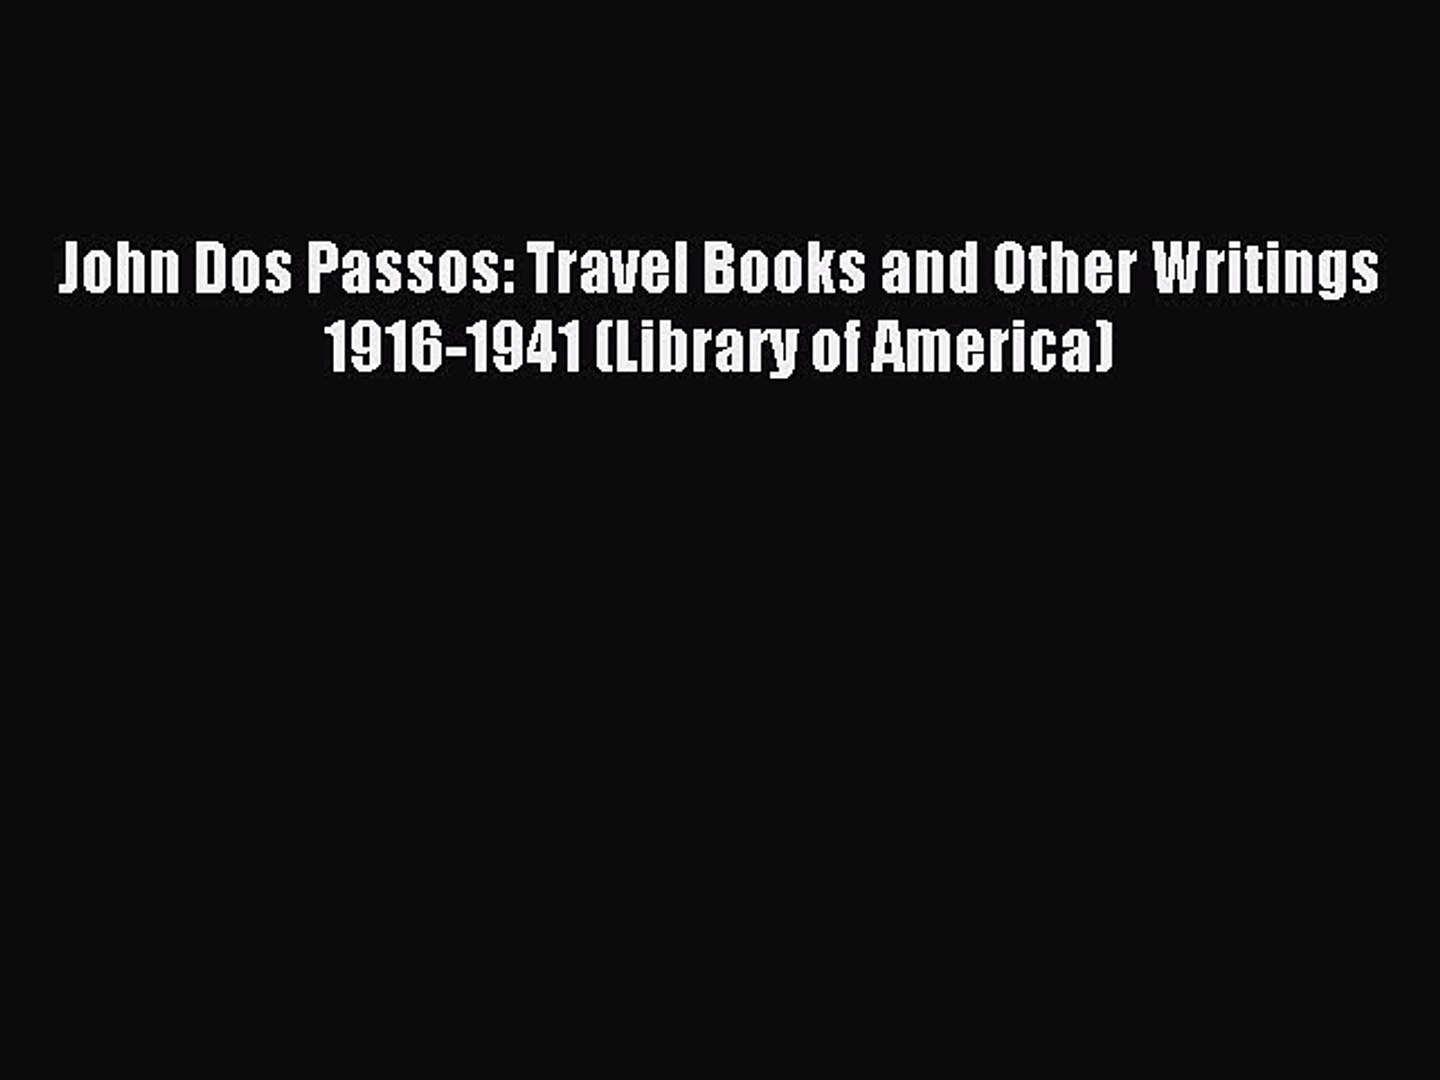 Read John Dos Passos: Travel Books and Other Writings 1916-1941 (Library of America) Ebook